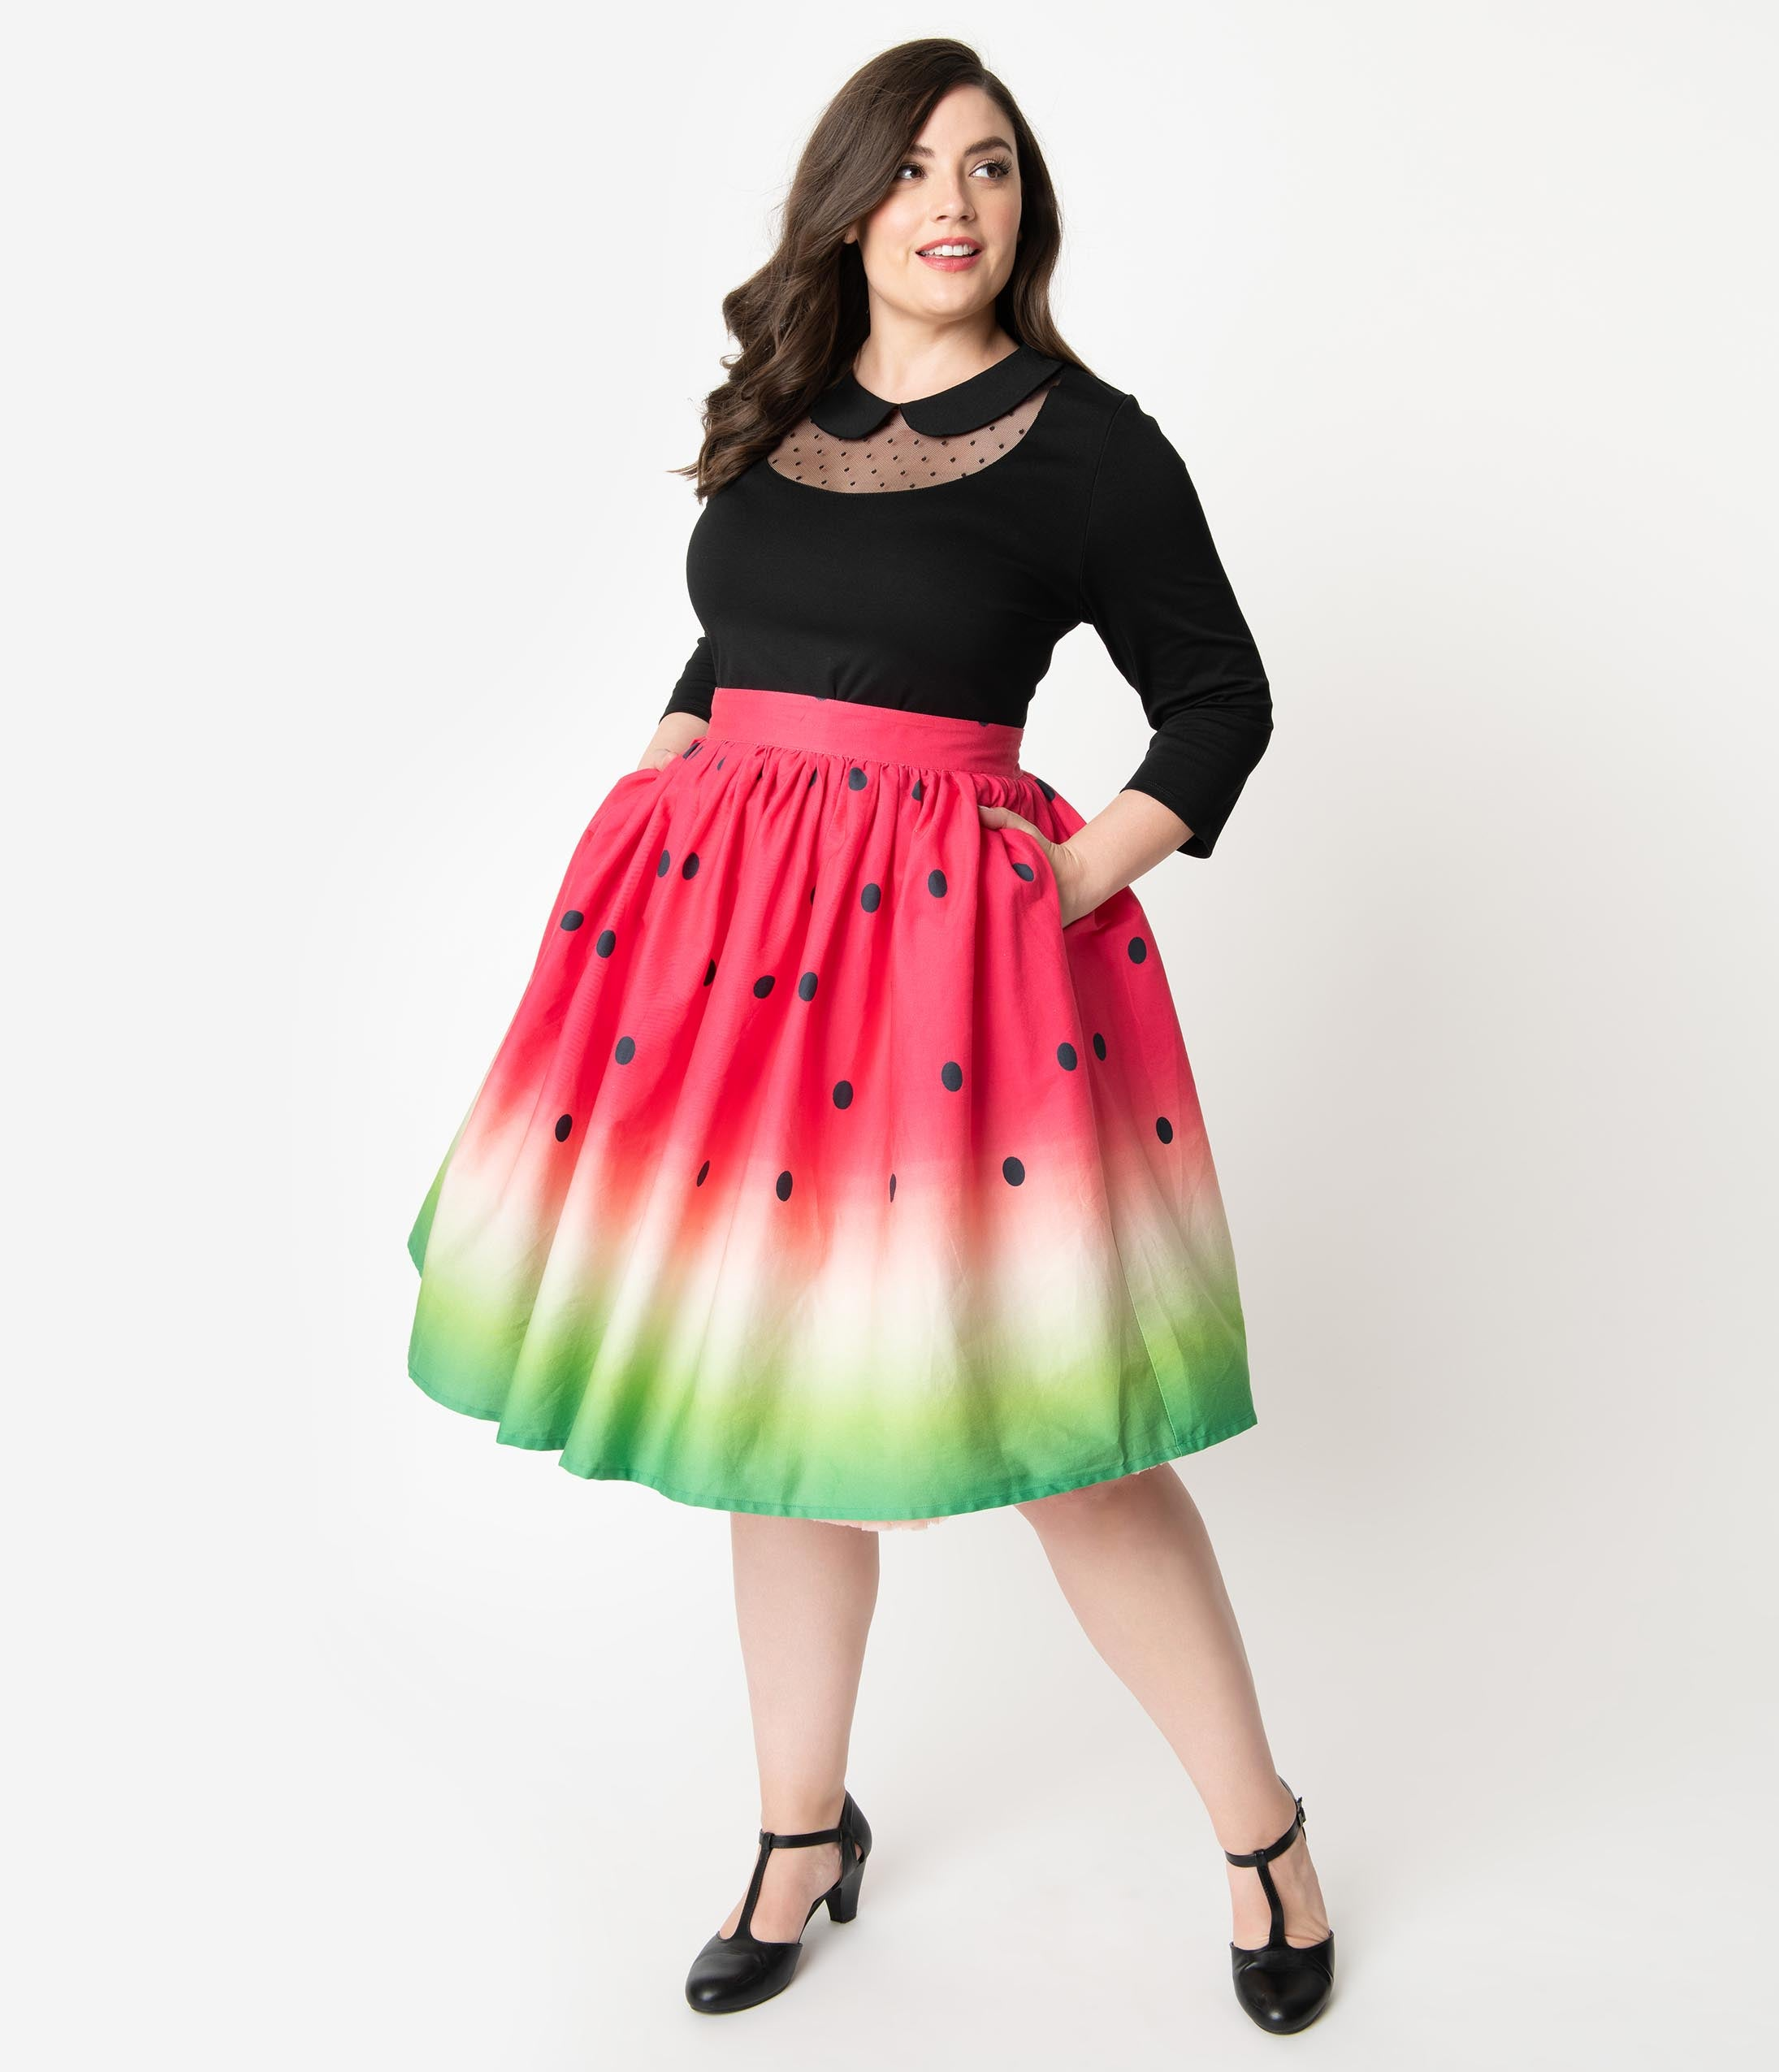 1950s Plus Size Dresses, Swing Dresses Unique Vintage Plus Size 1950S High Waist Watermelon Circle Swing Skirt $68.00 AT vintagedancer.com